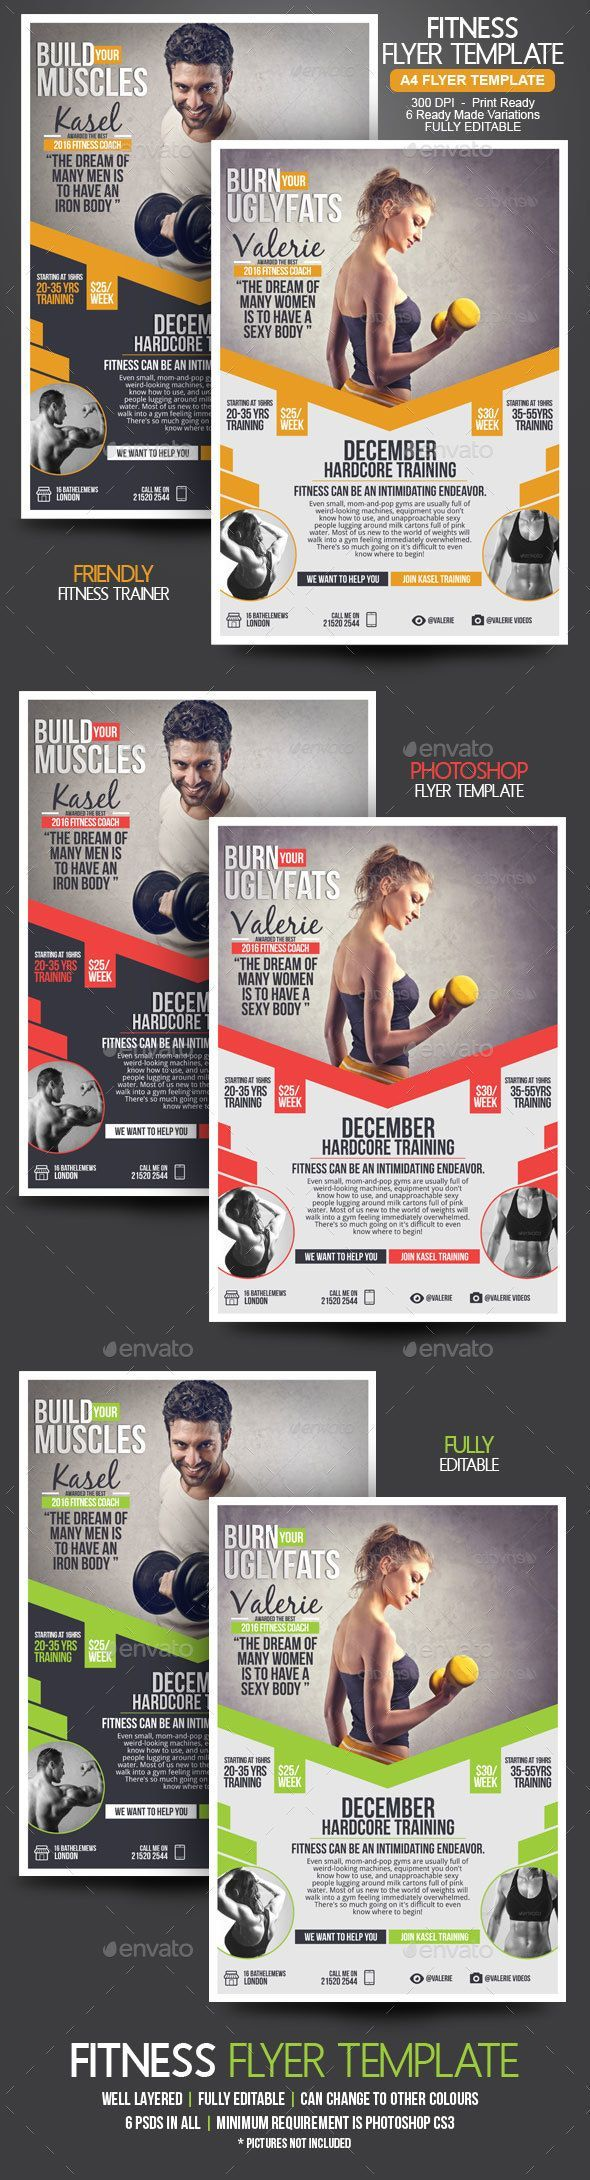 Fitness Flyer by BloganKids Fitness Flyer Are you a fitness trainer? This is an amazing work. A fitness coach can shape a person body, he can make someone loo